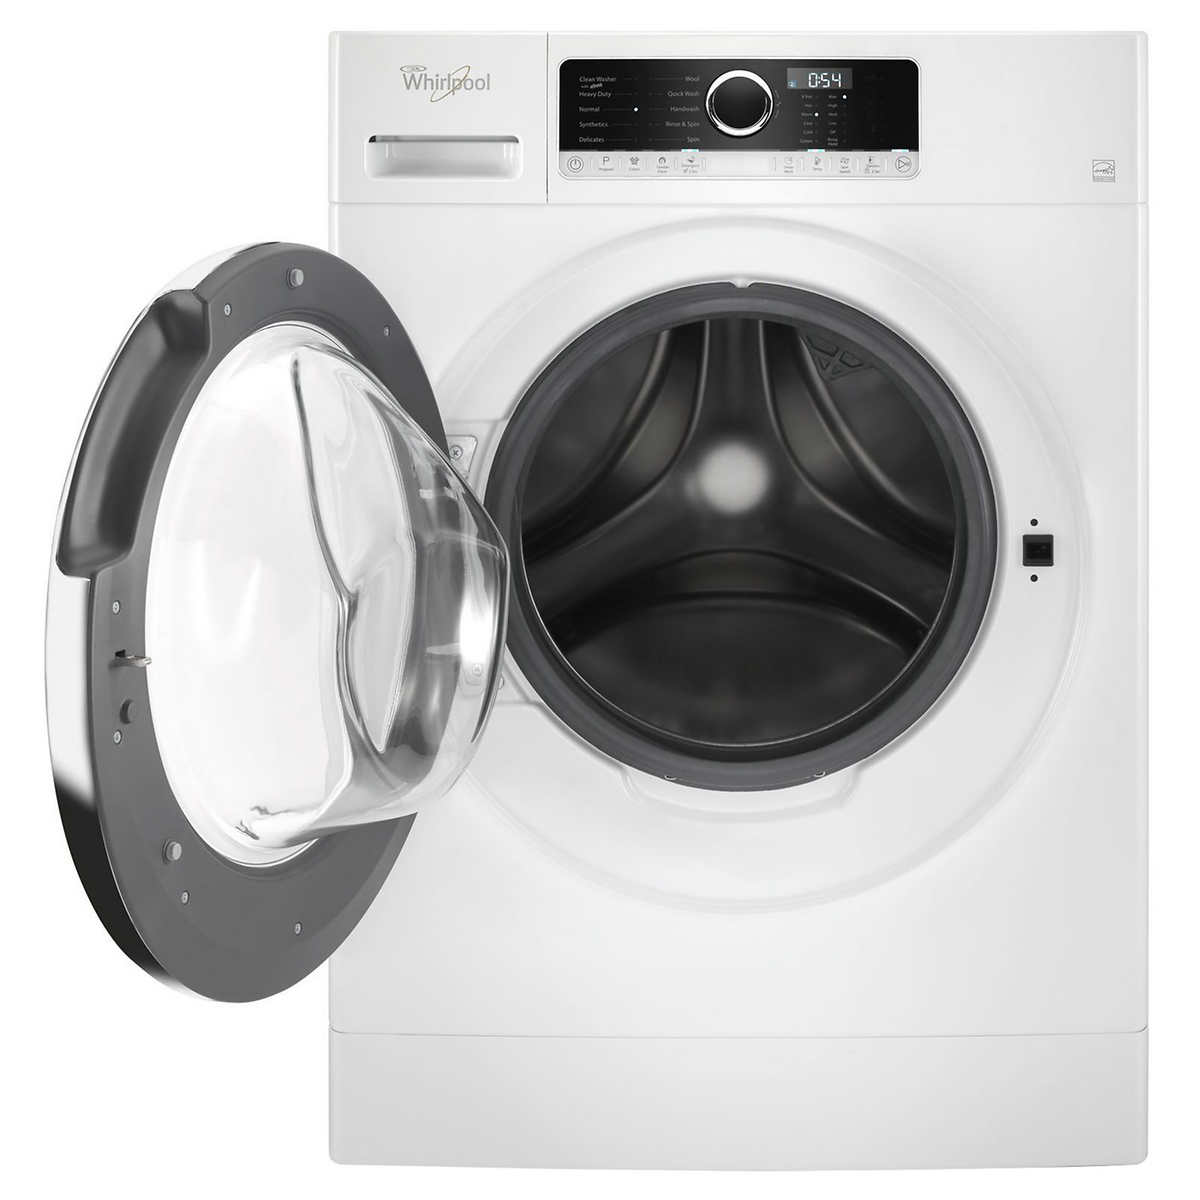 Whirlpool 2 6 cu  ft  White Front-load Compact Washer with Save Time Option